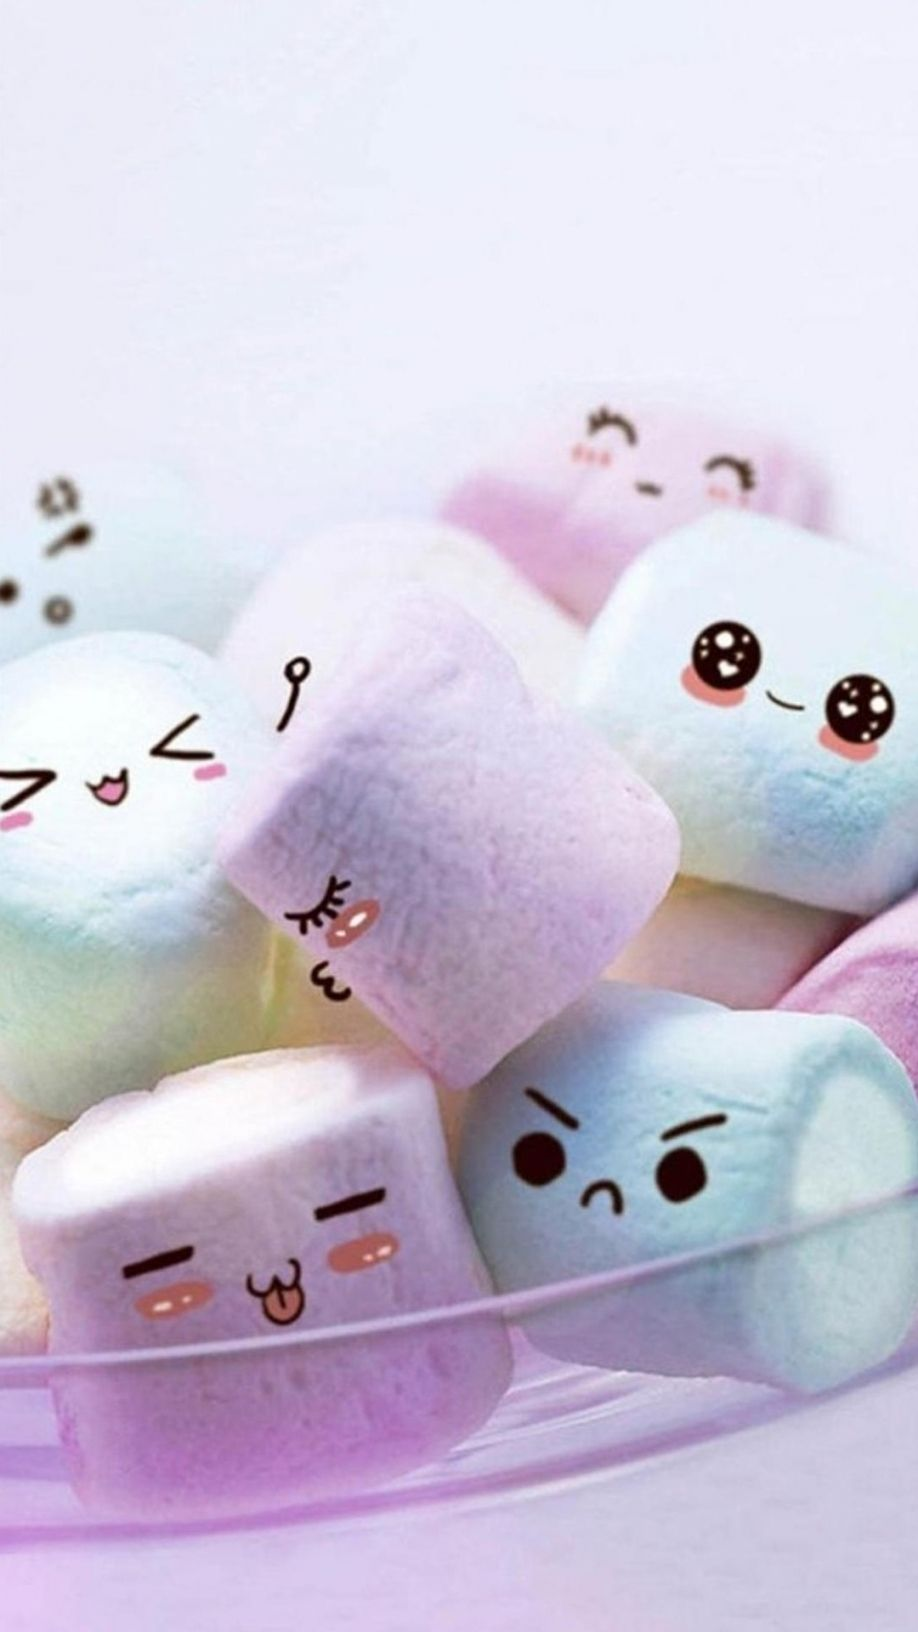 Cute Korean Phone Wallpapers Top Free Cute Korean Phone